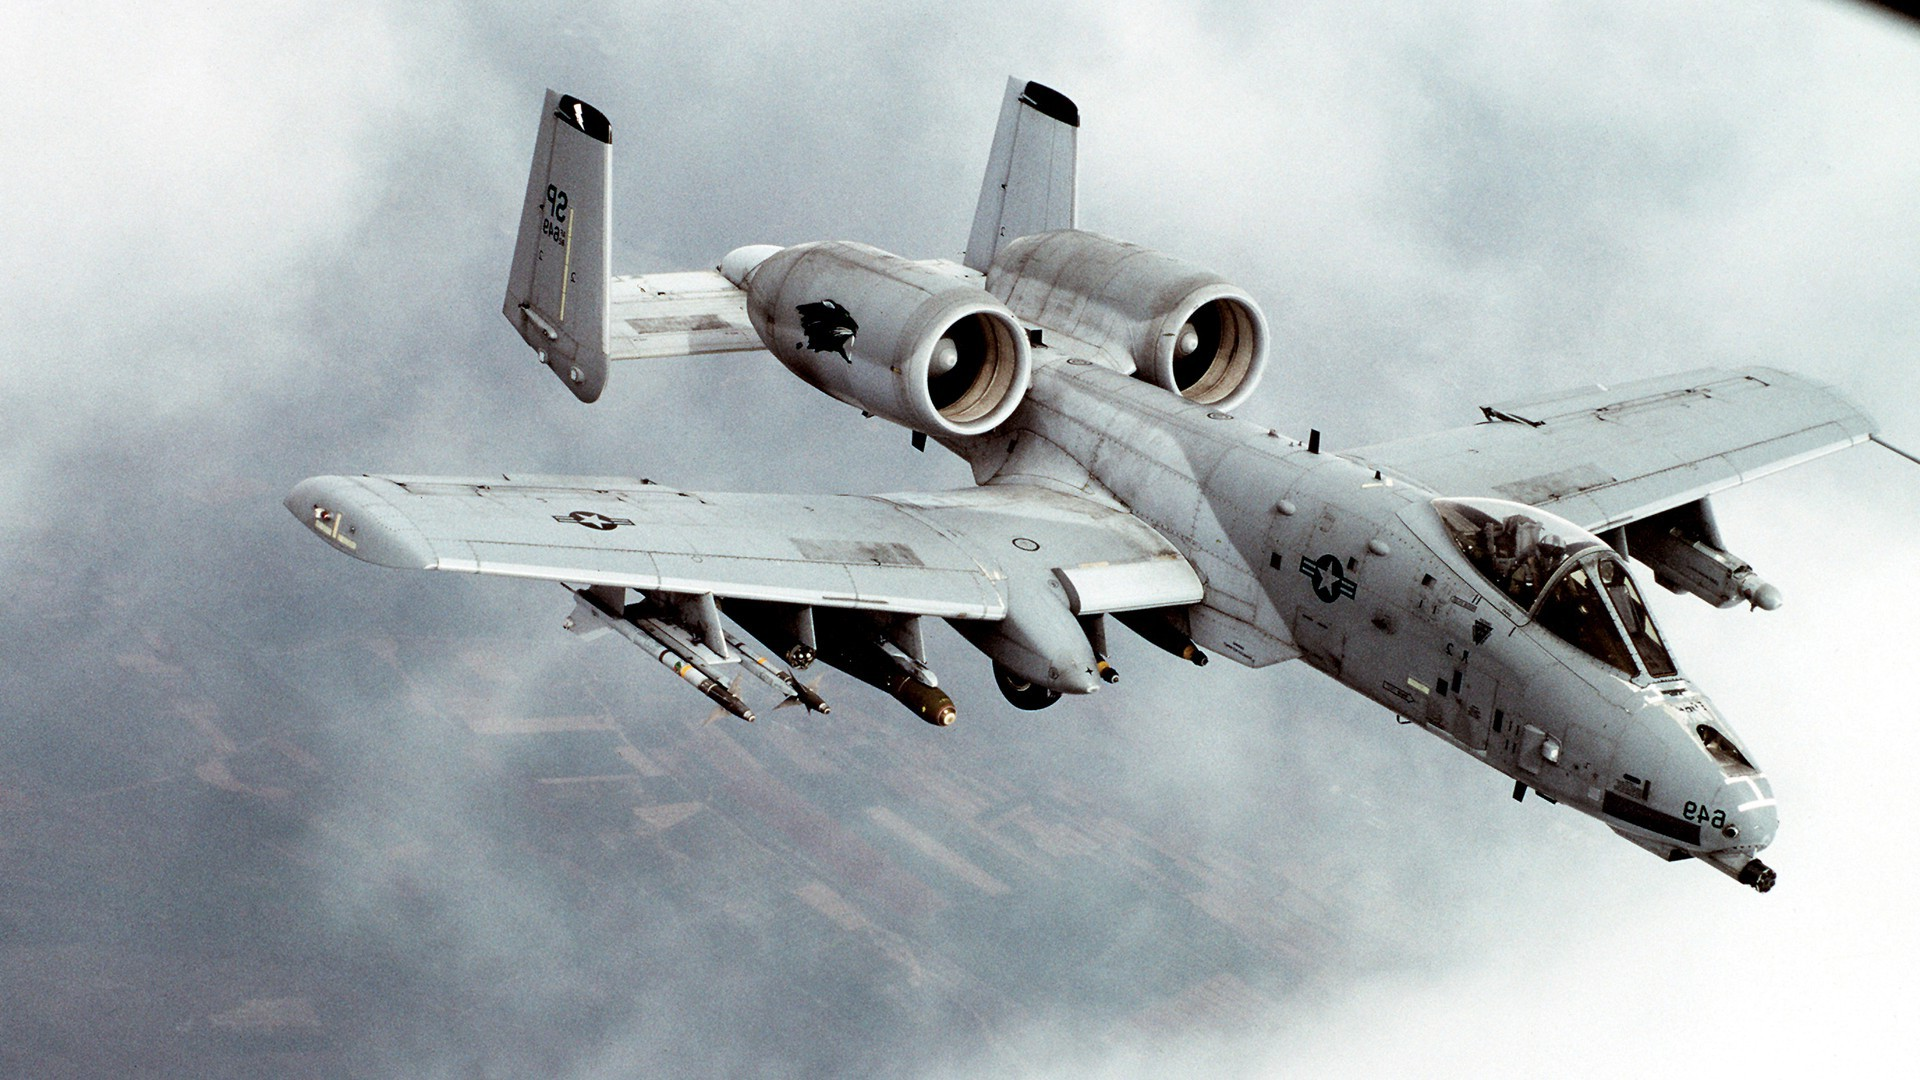 A10 Warthog Airplane Military Aircraft Aircraft Jet 1920x1080